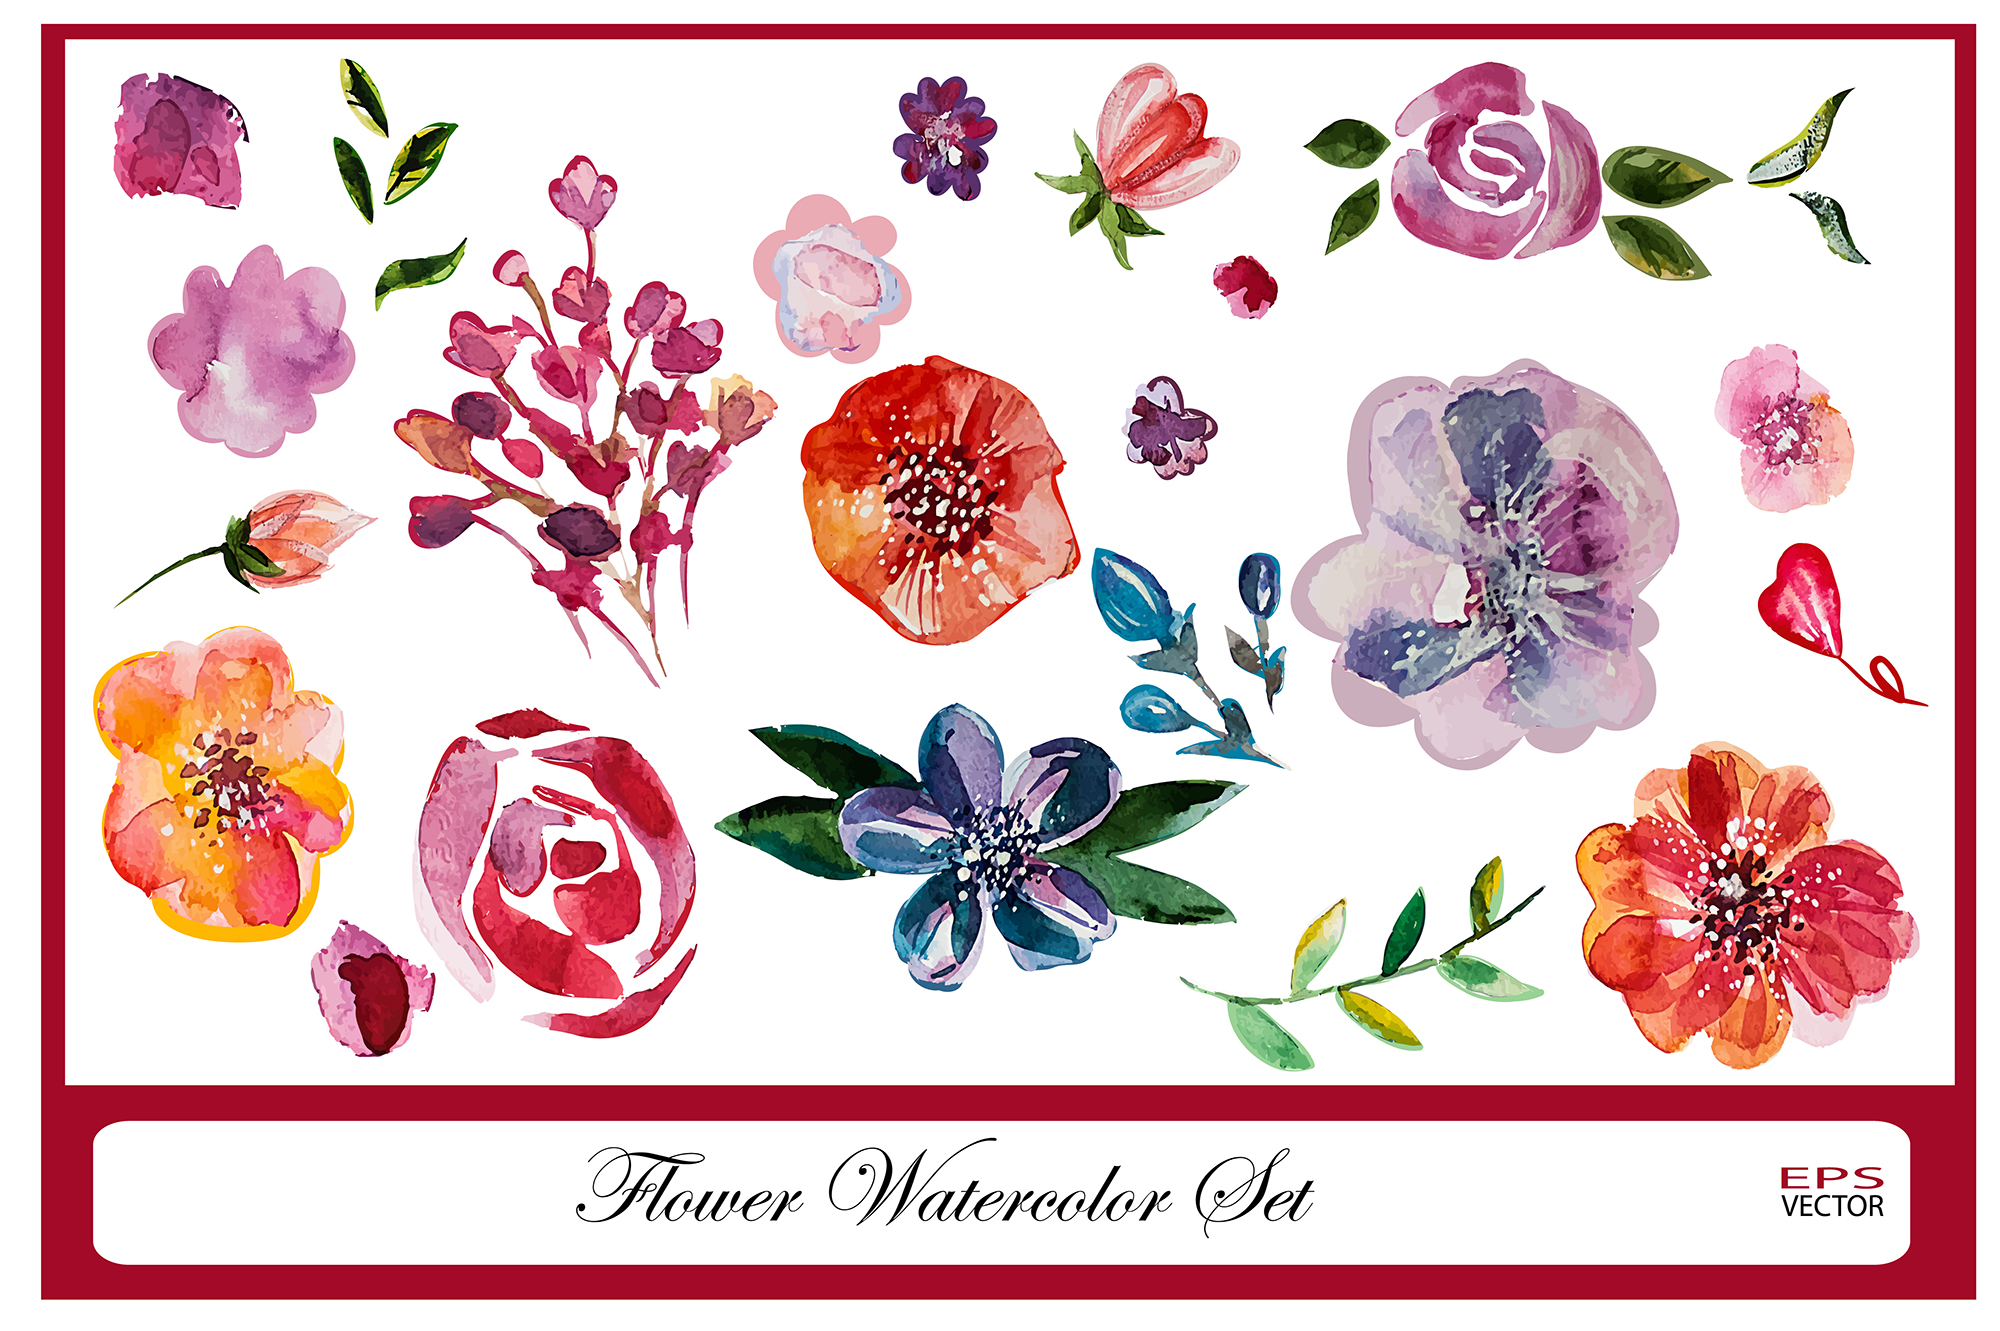 Watercolor flowers set example image 1